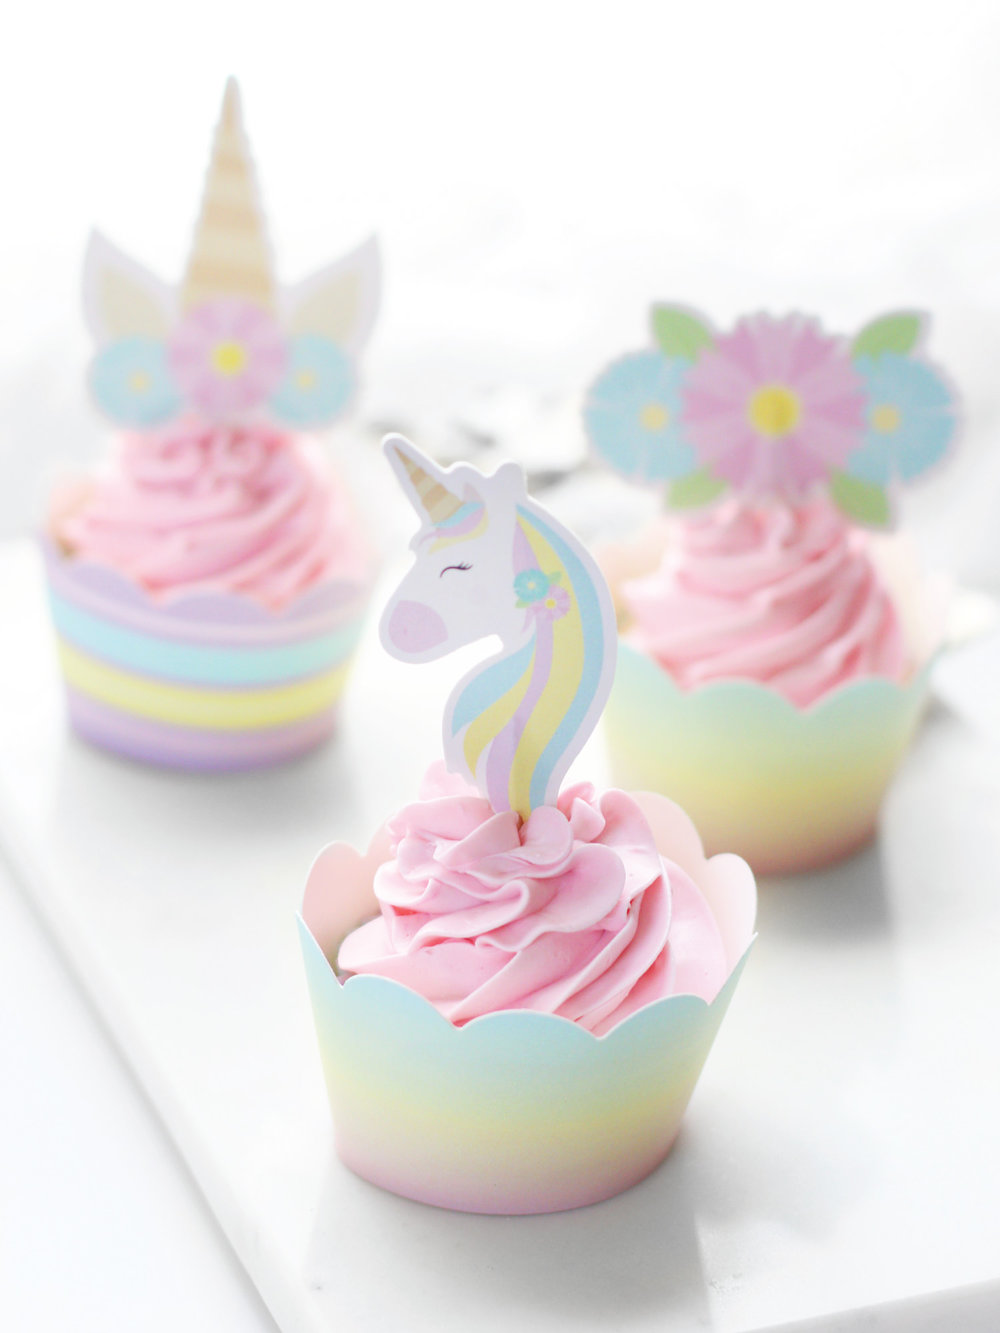 royal-icing-baking-supply-birthday-cupcakes--unicorn-baby-shower-decorations-cupcake-wrappers-homemade-cupcakes-girl-party-unicorn-cupcake-toppers-.jpg